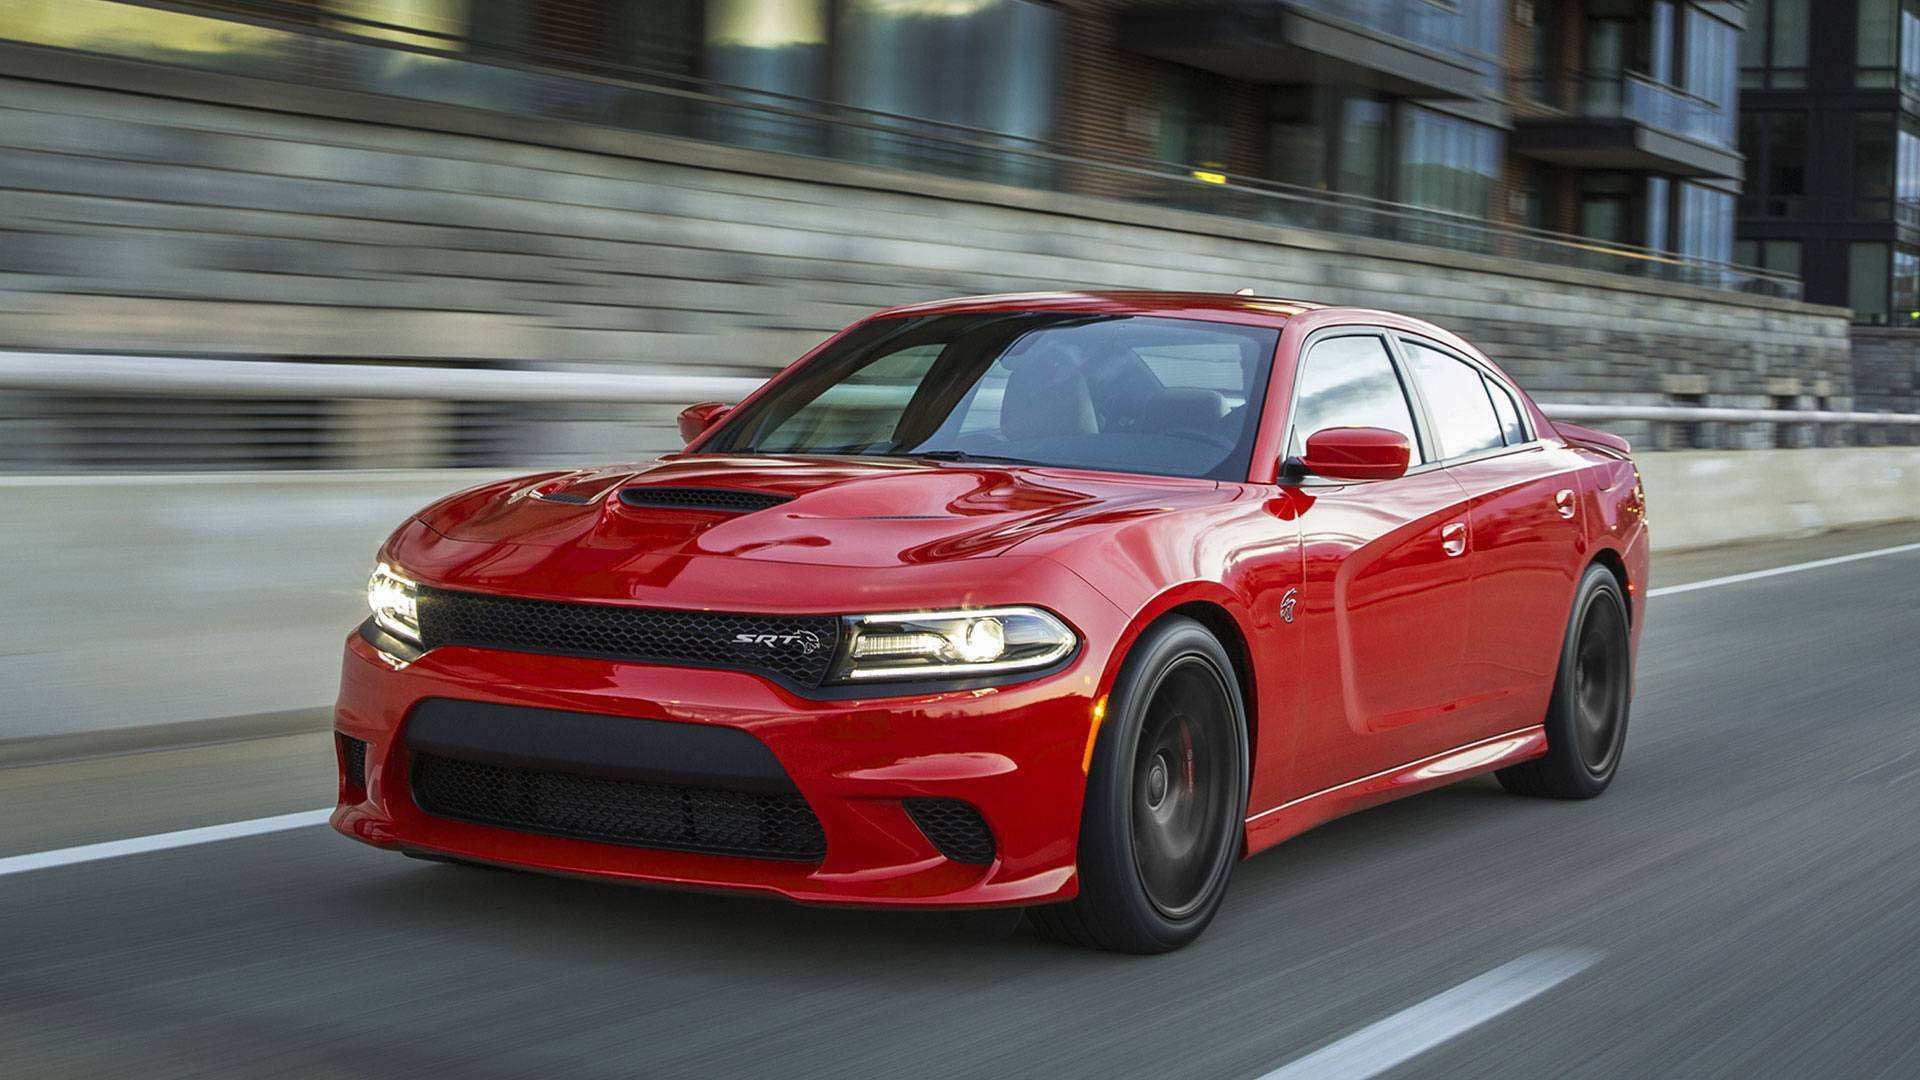 39 All New 2020 Dodge Charger Srt8 Hellcat Engine